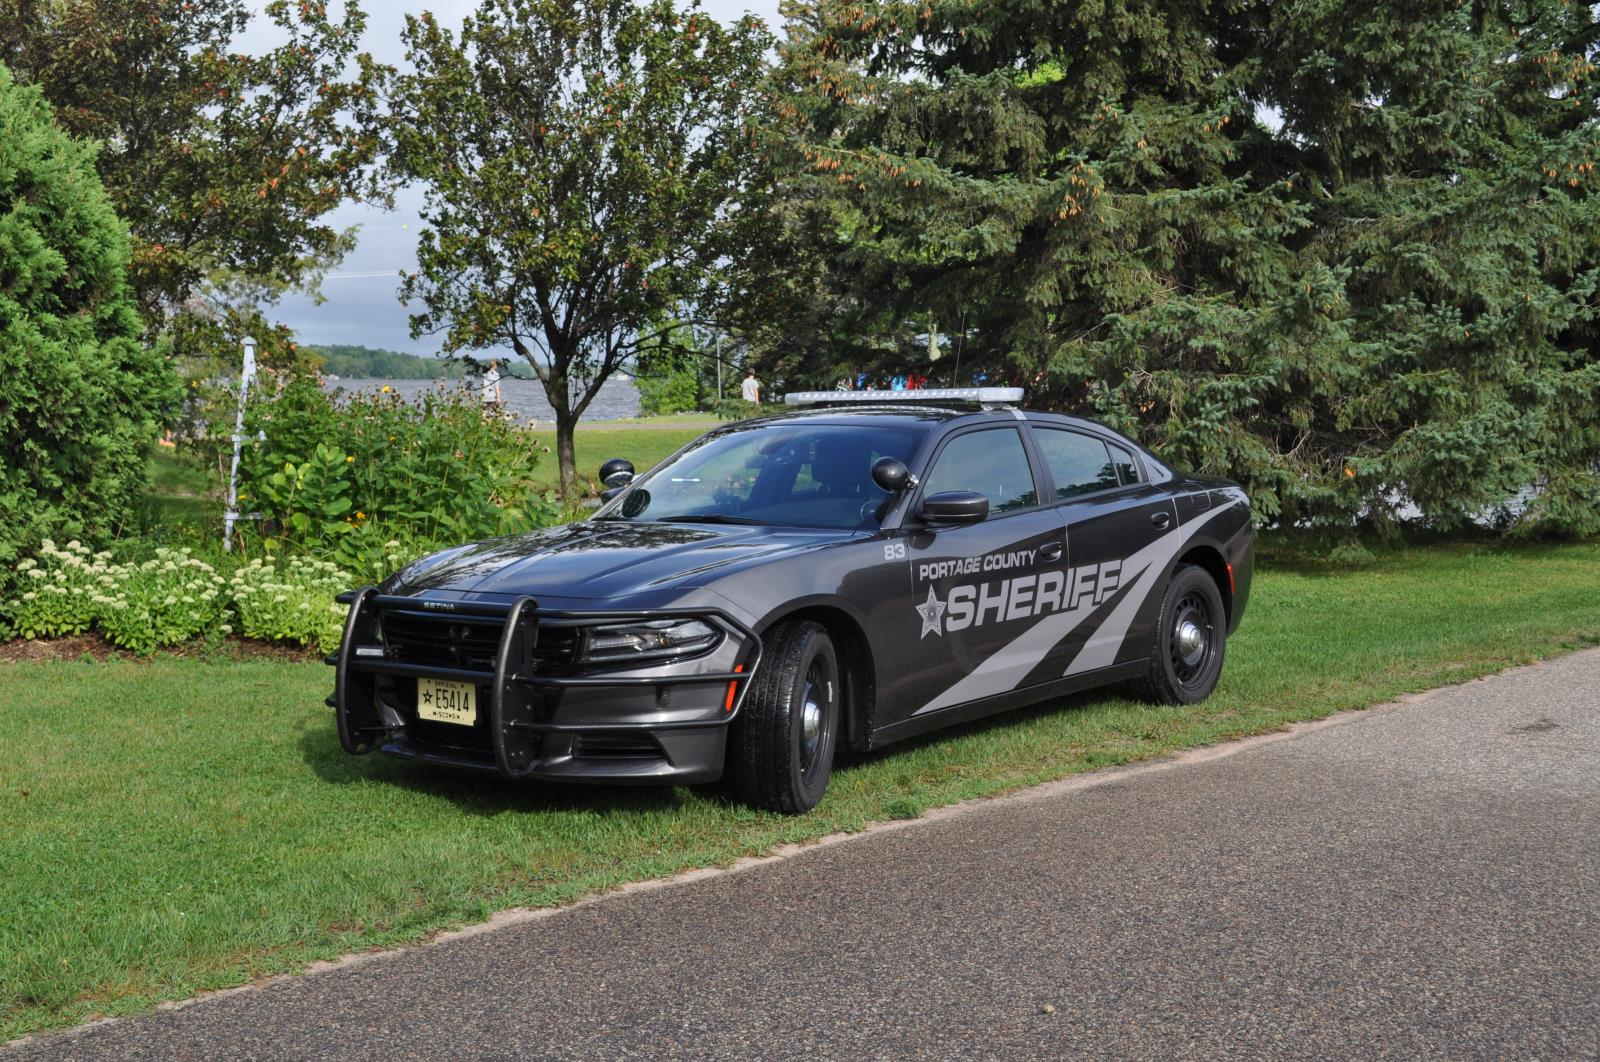 Sheriff's Office | Portage County, WI